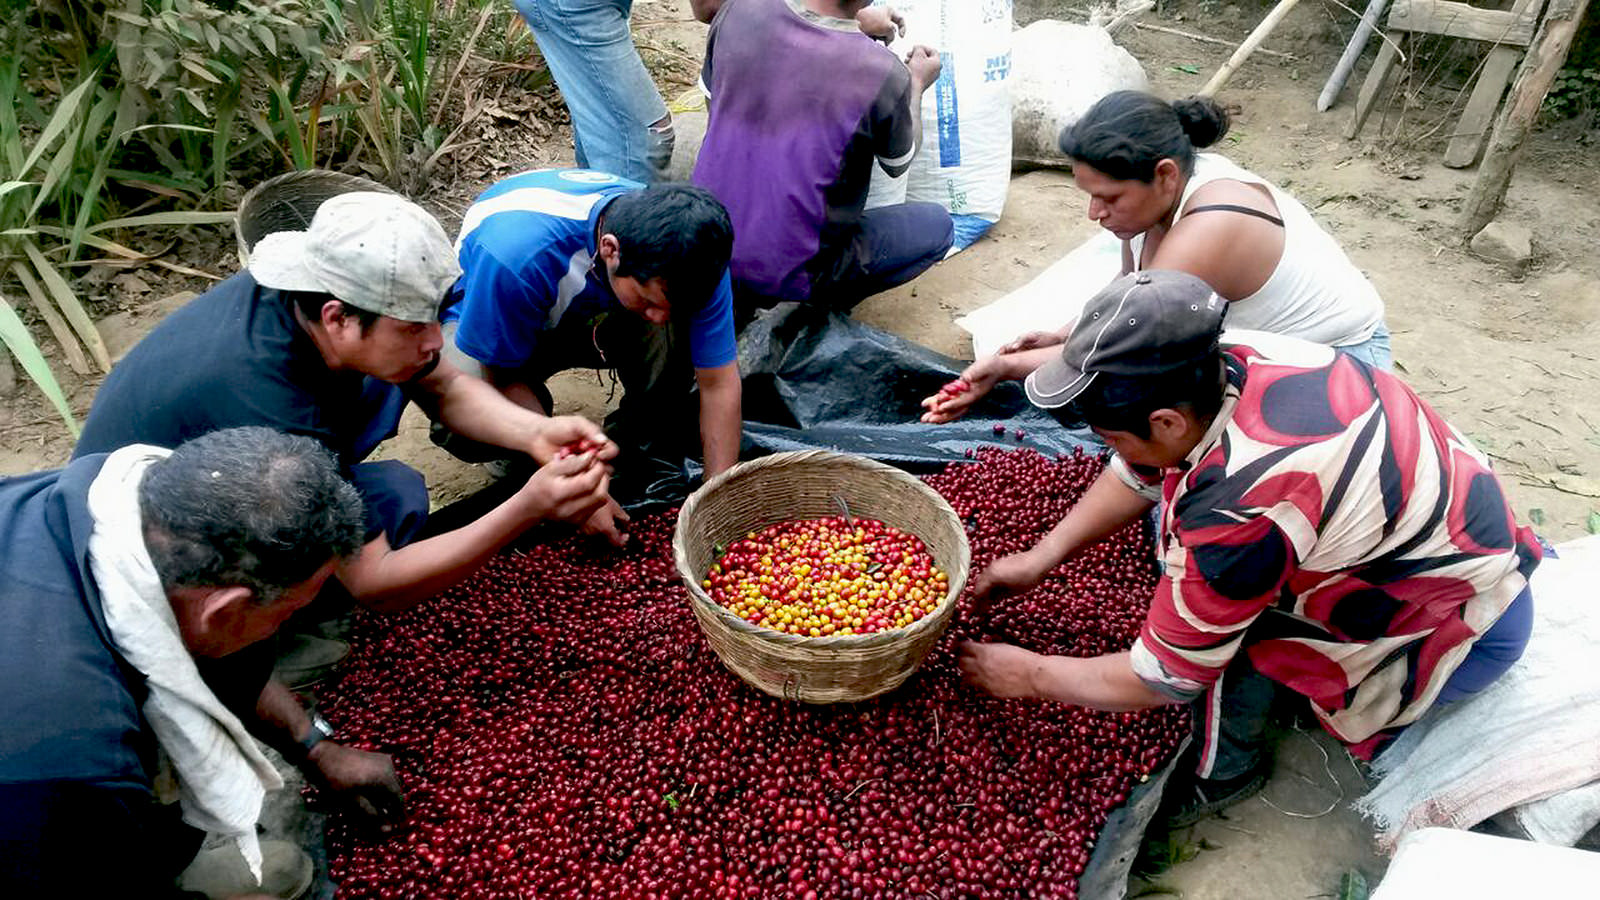 Antonio, El Aguila's Farm Manager trains the pickers only to select the very ripest cherries